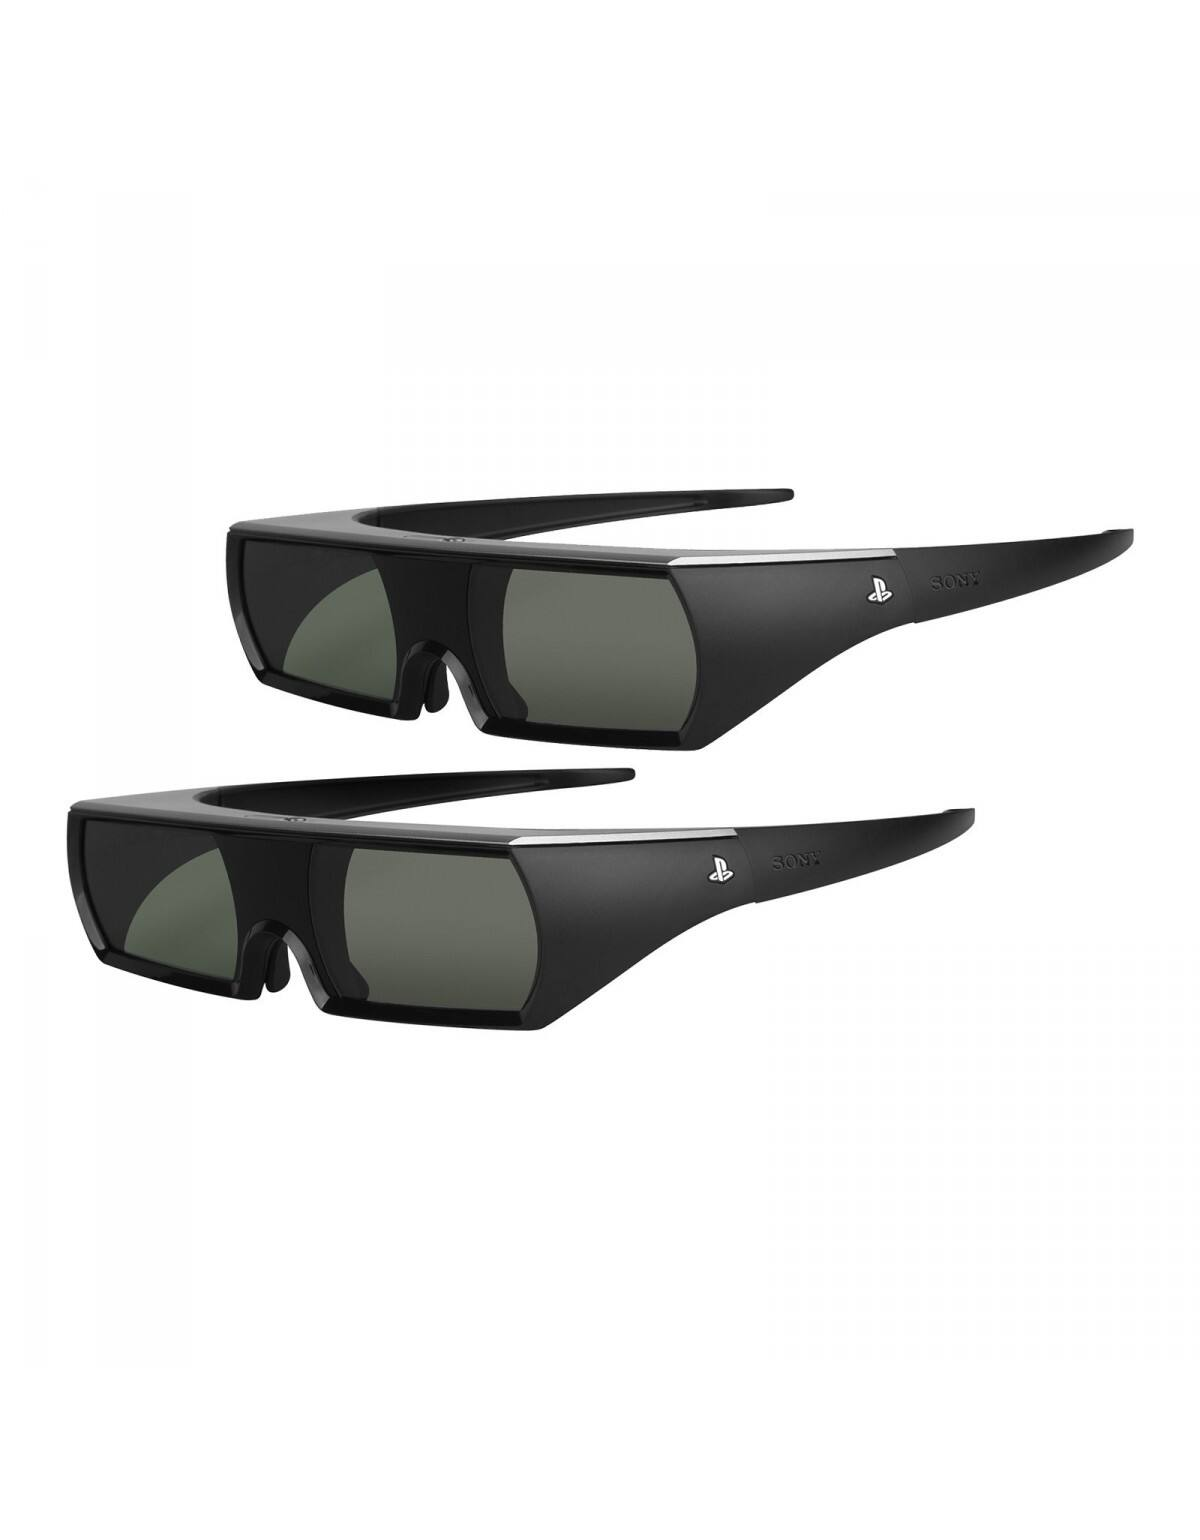 2-Pack Sony Playstation 3 Active Shutter 3D Glasses (New Bulk) $20 + Free Shipping!